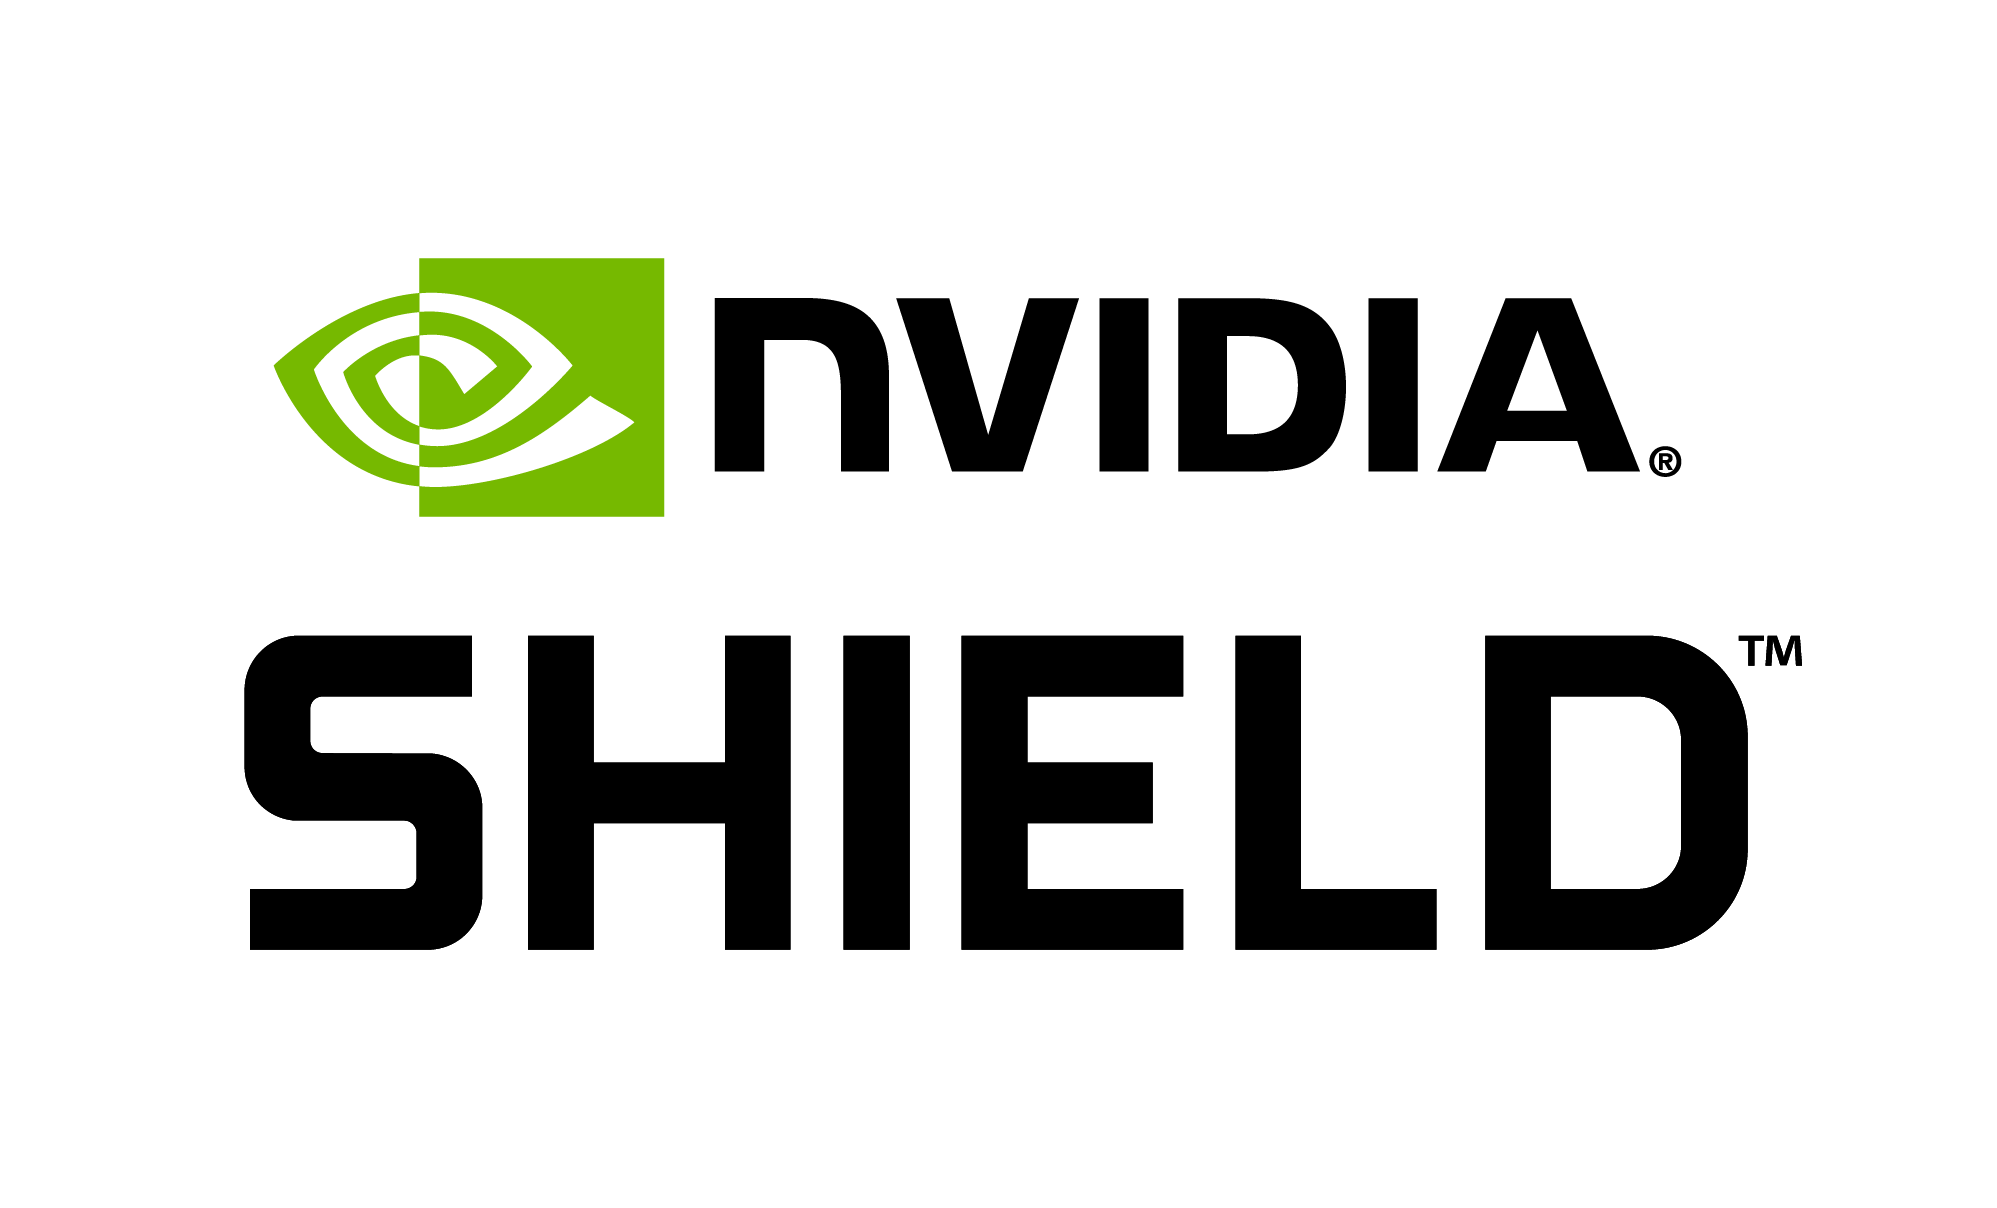 NVIDIA-SHIELD-logo